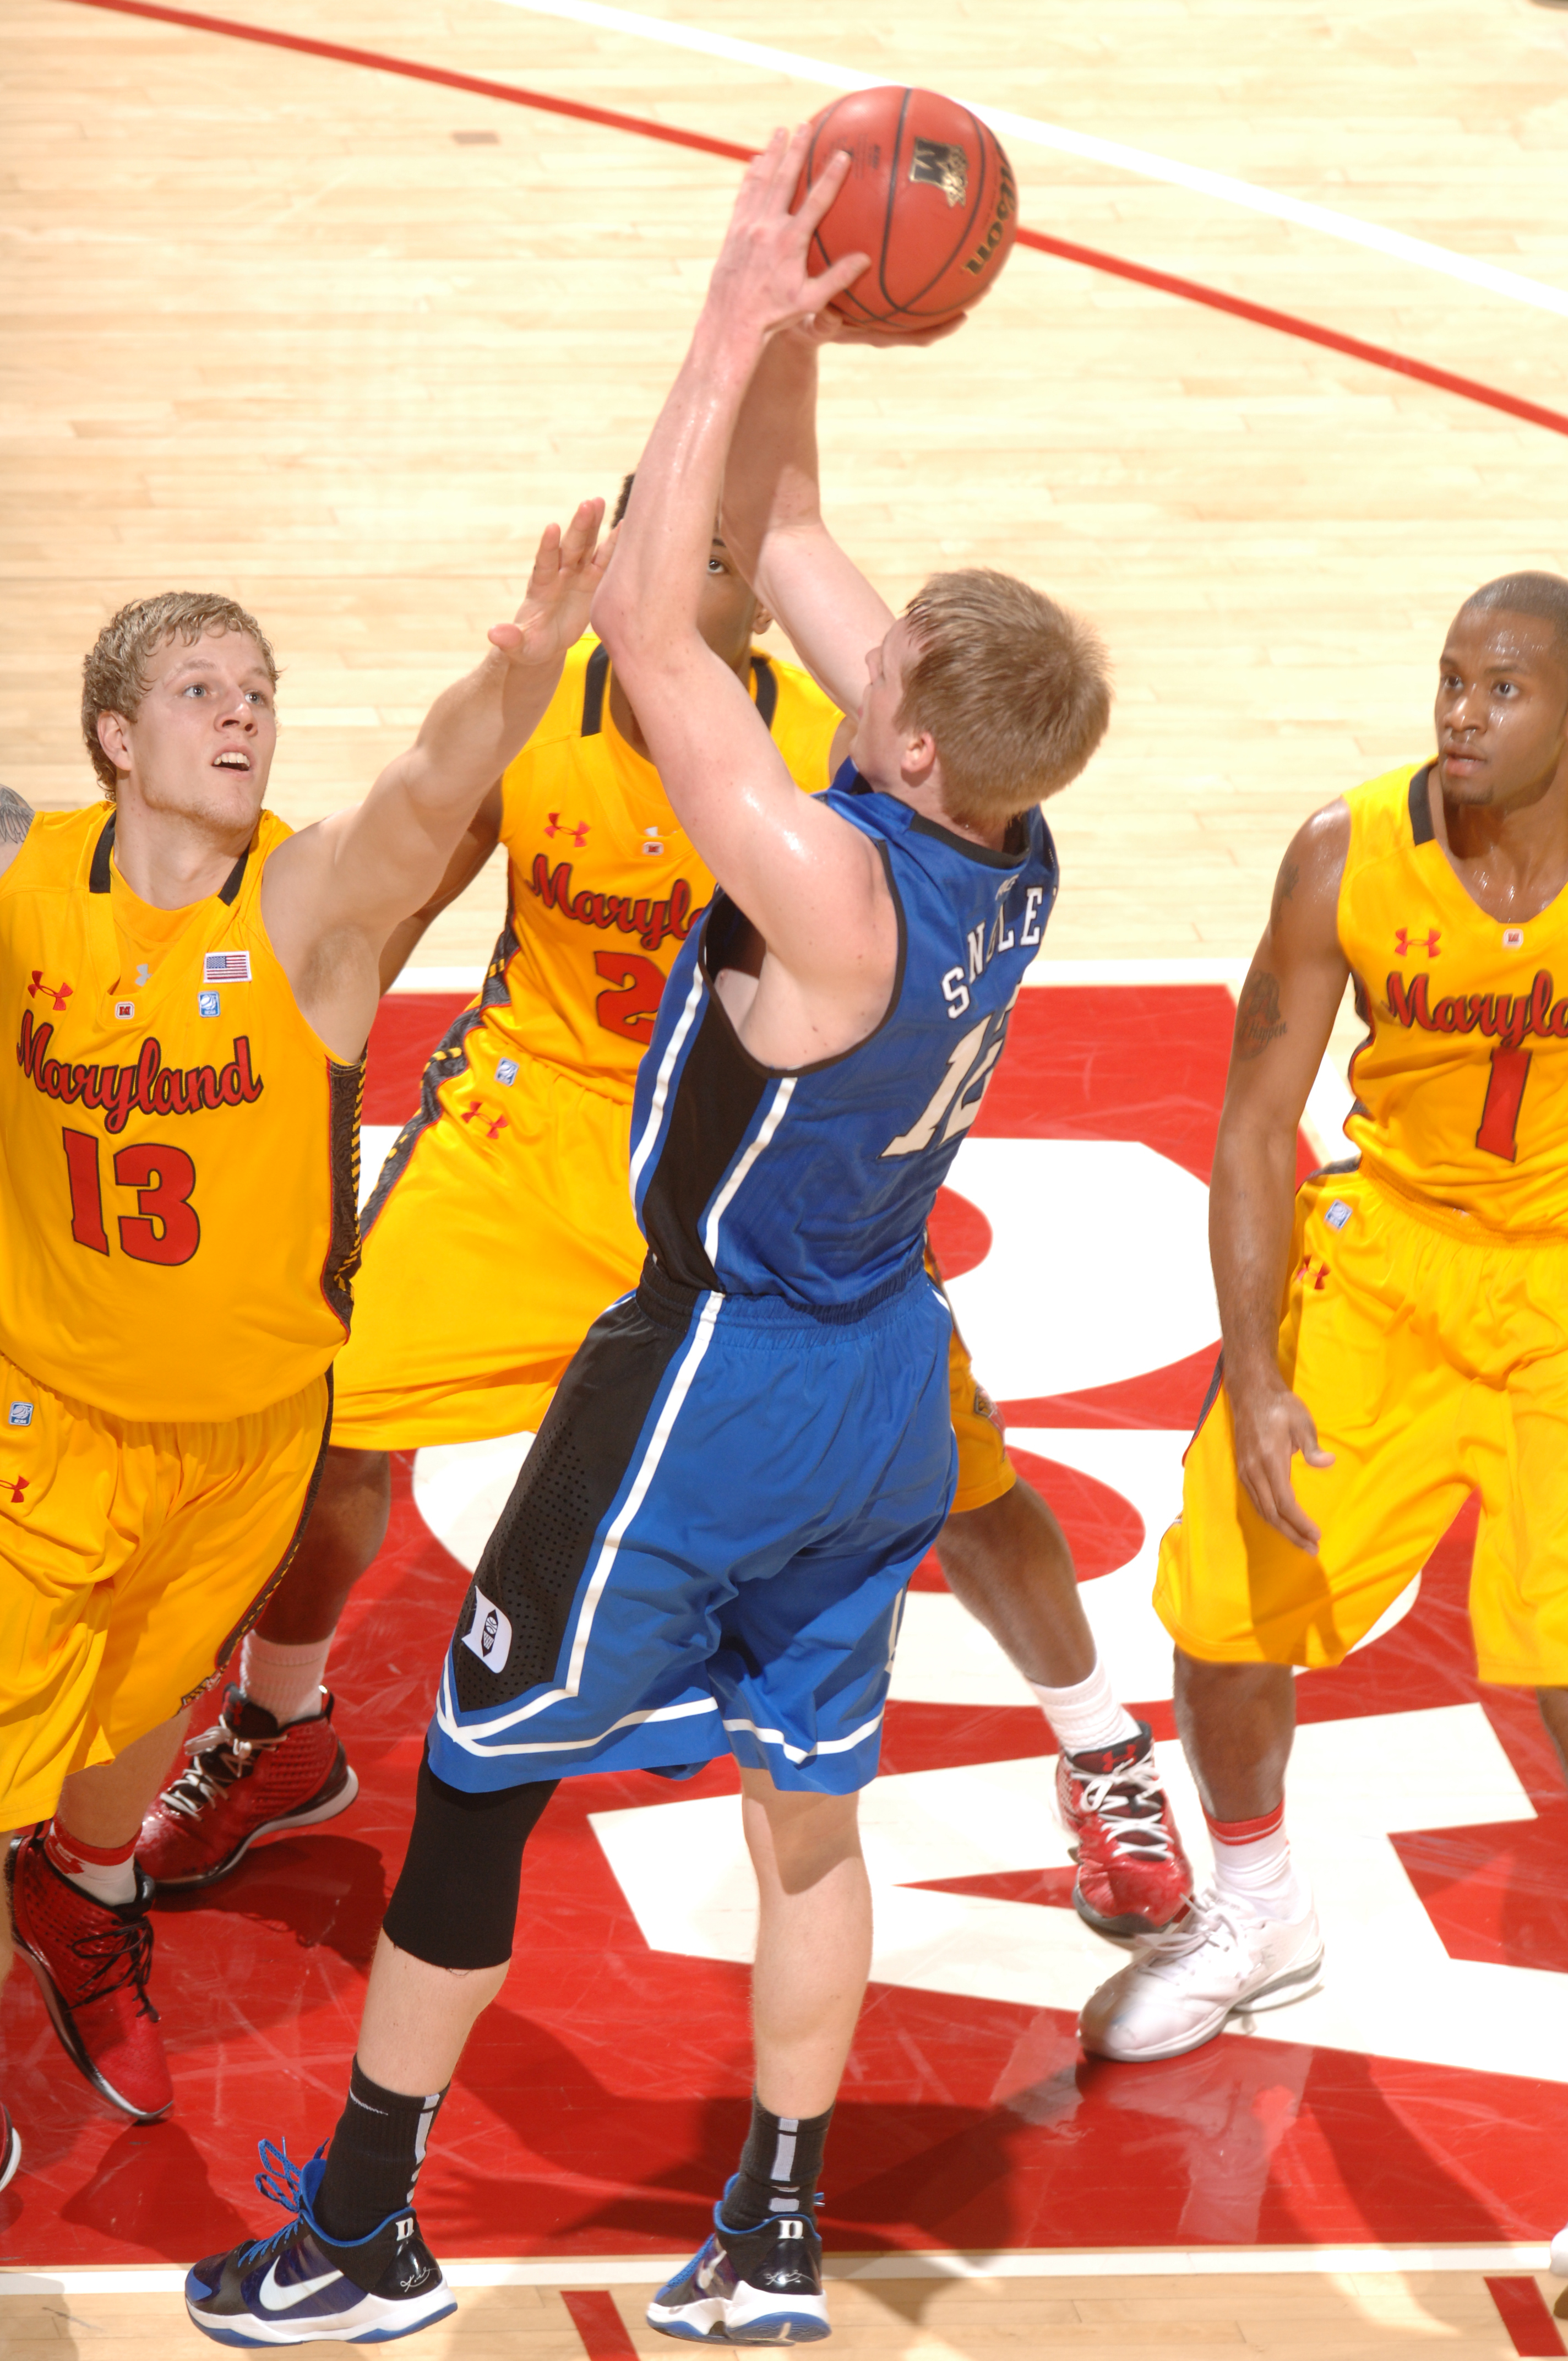 COLLEGE PARK, MD - FEBRUARY 2: Kyle Singler #12 of the Duke Blue Devils takes a jump shot during a college basketball game against the Maryland Terrapins on February 2, 2011 at the Comcast Arena in College Park, Maryland. The Blue Devils won 80-62. (Photo